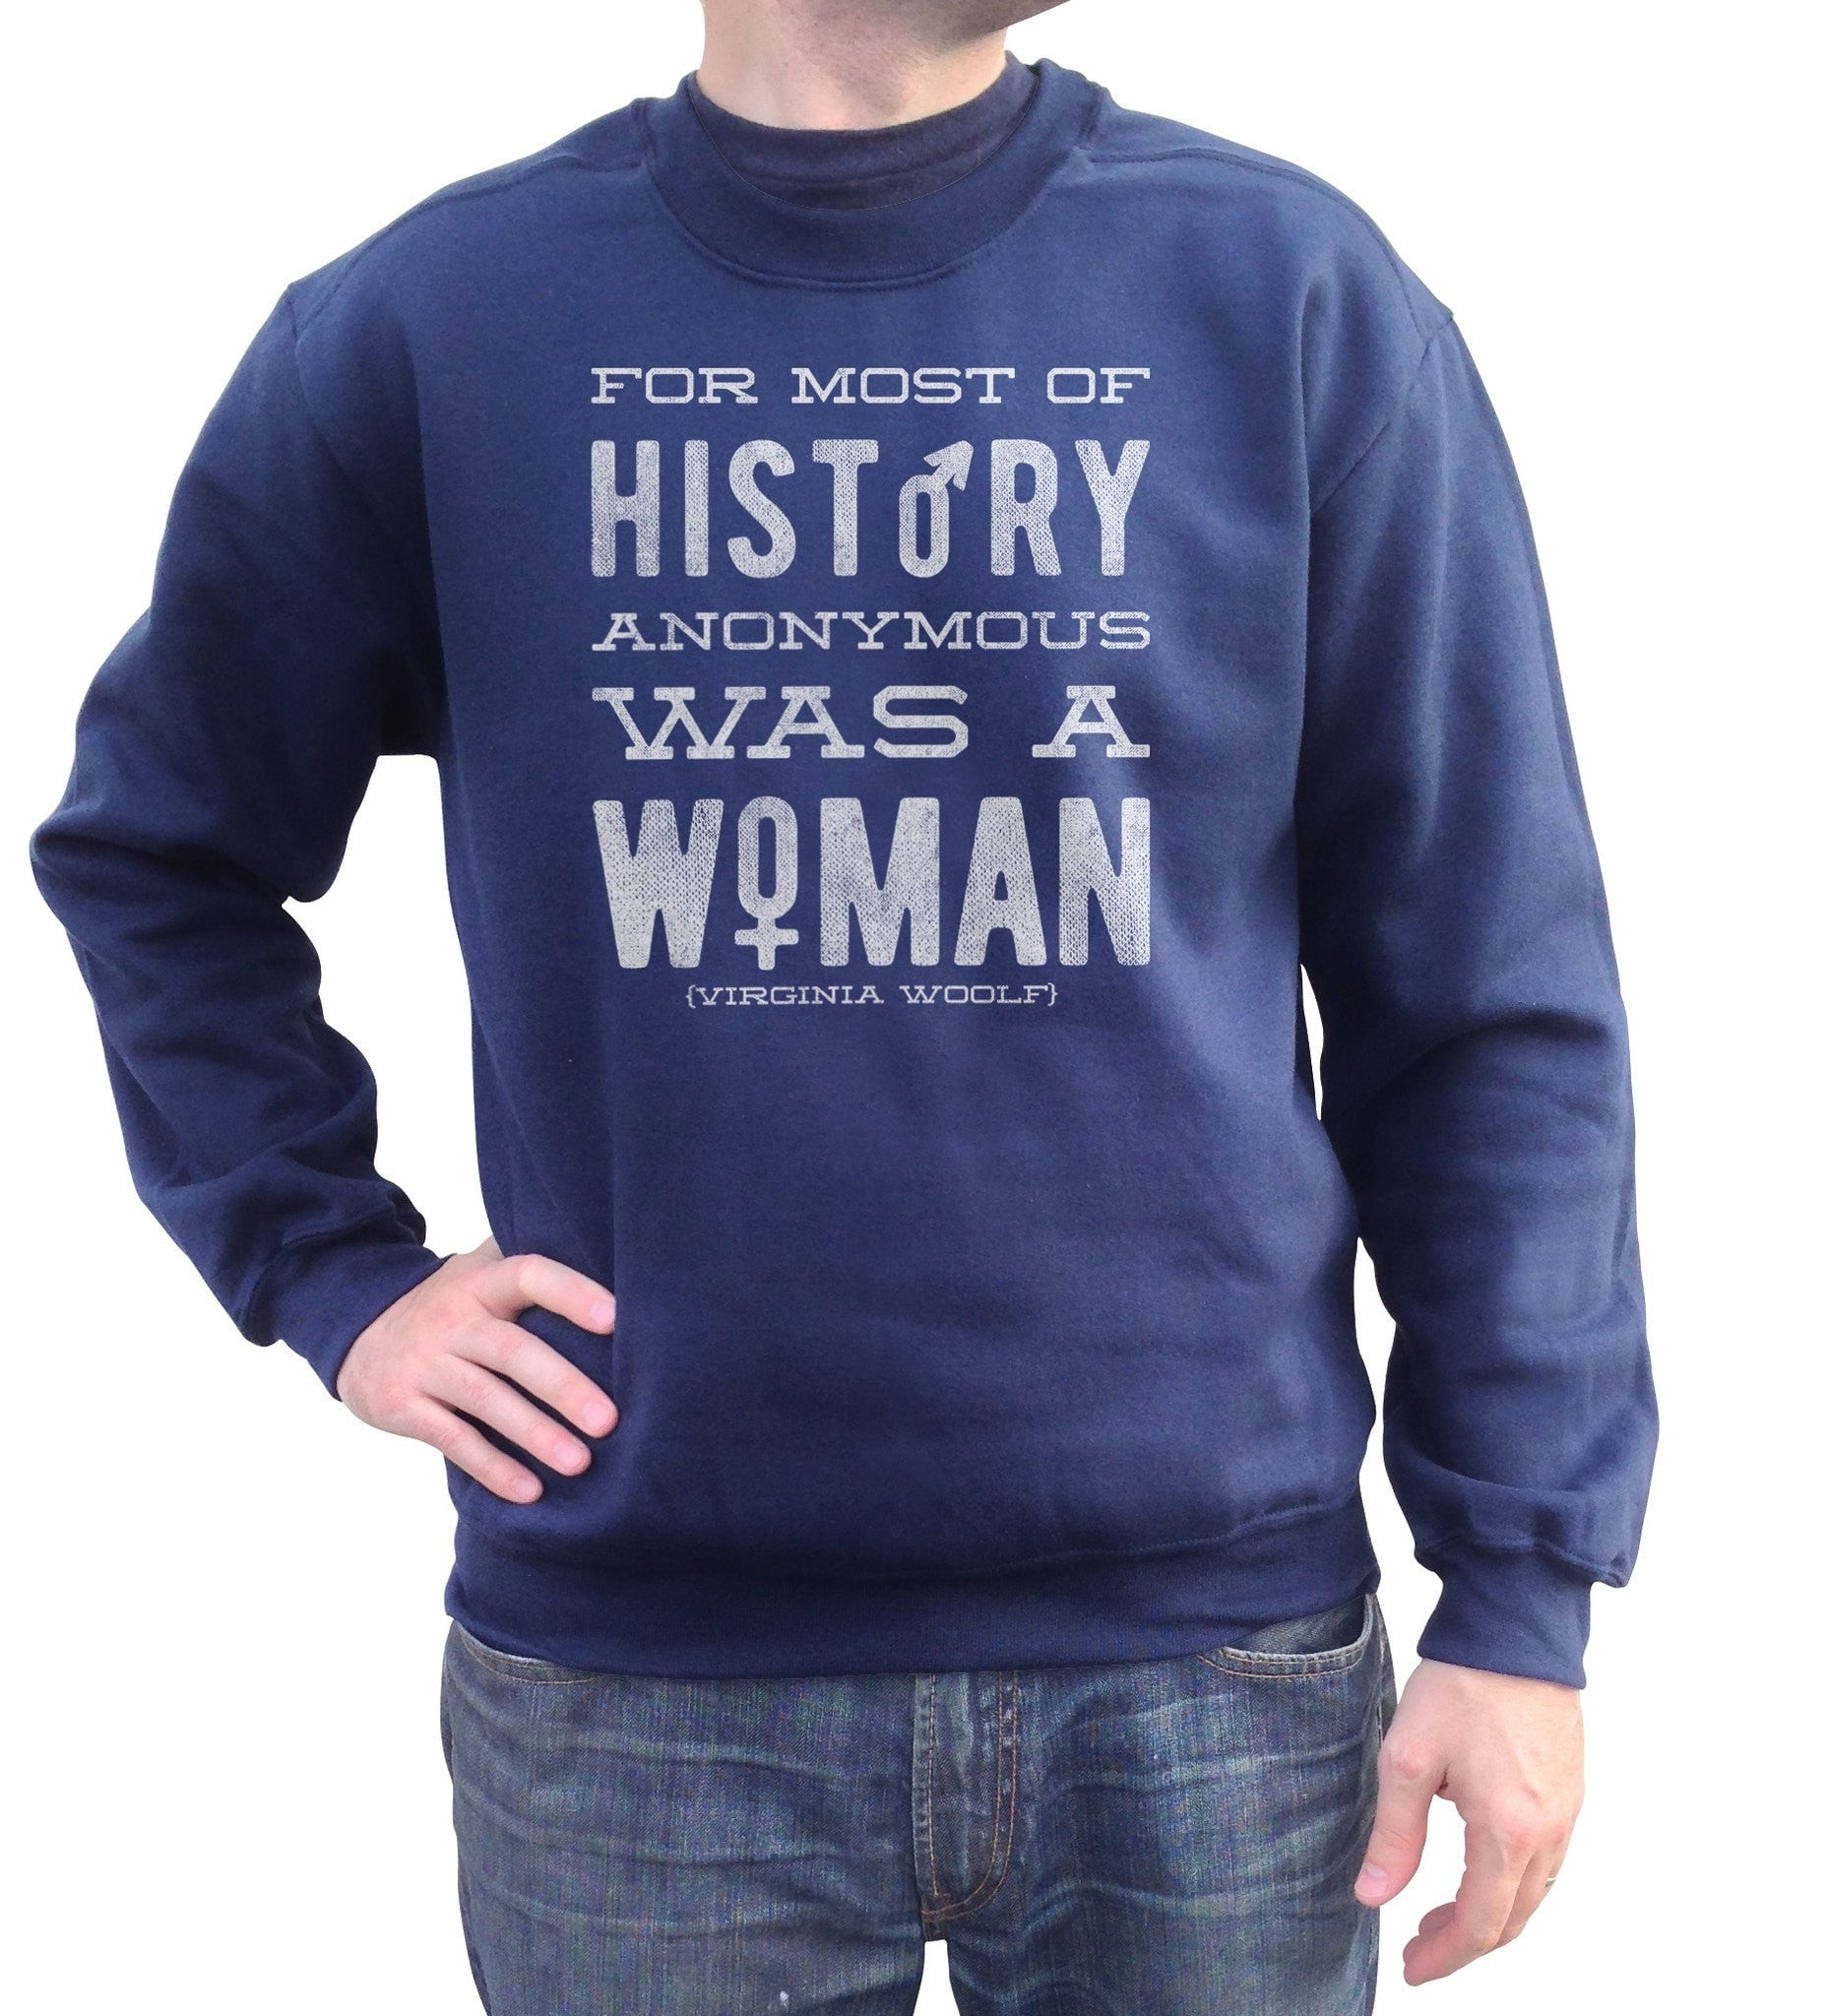 Unisex For Most of History Anonymous Was a Woman Sweatshirt